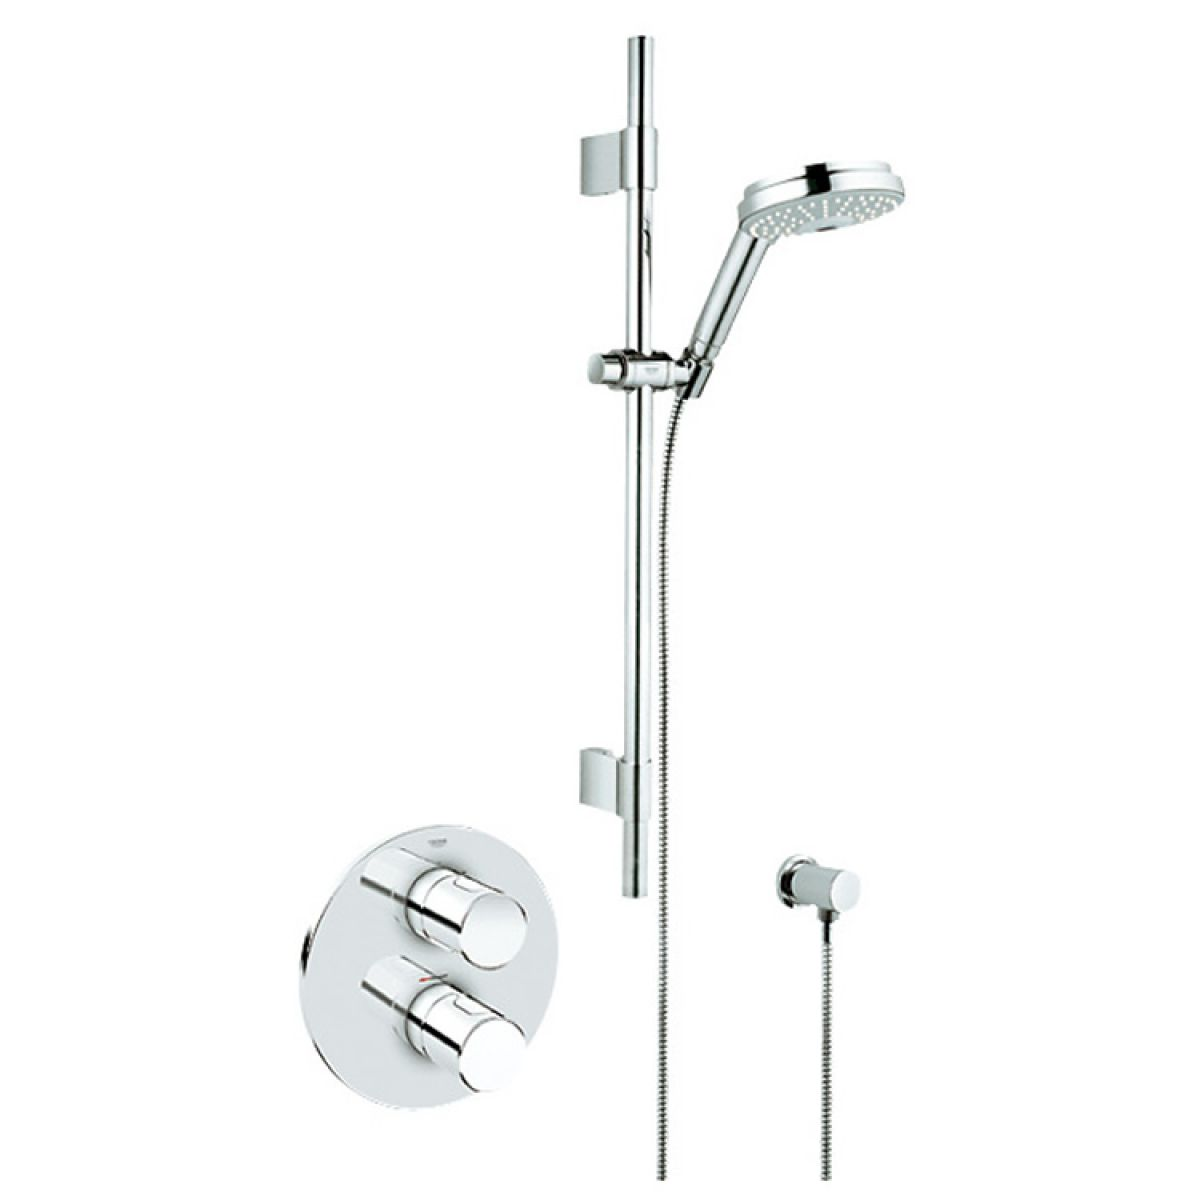 Grohe Grohmaster G3000 Cosmo BIV Concealed Shower Kit : UK Bathrooms